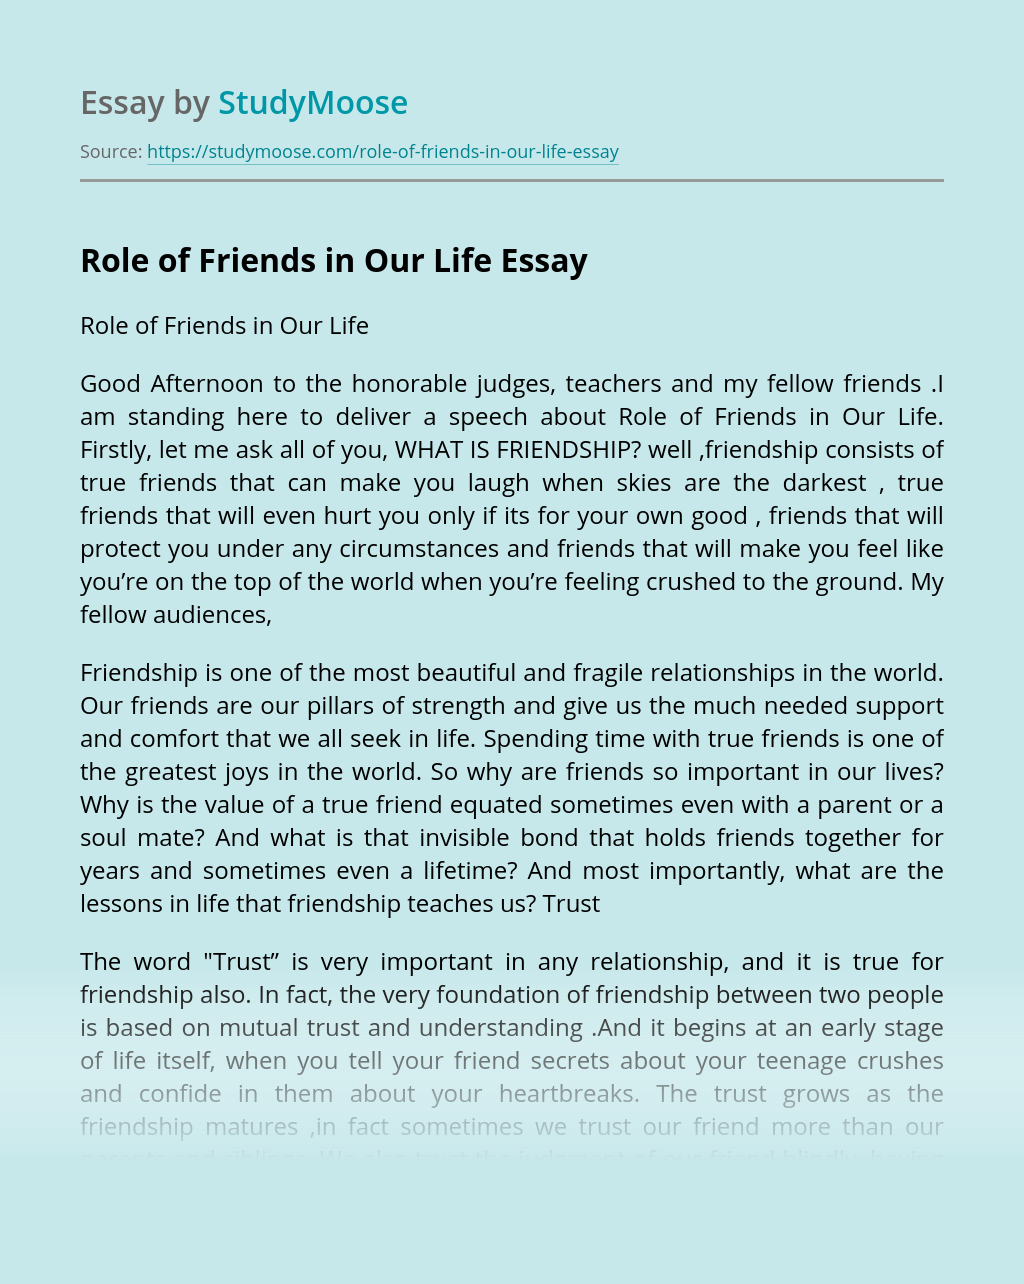 Role of Friends in Our Life